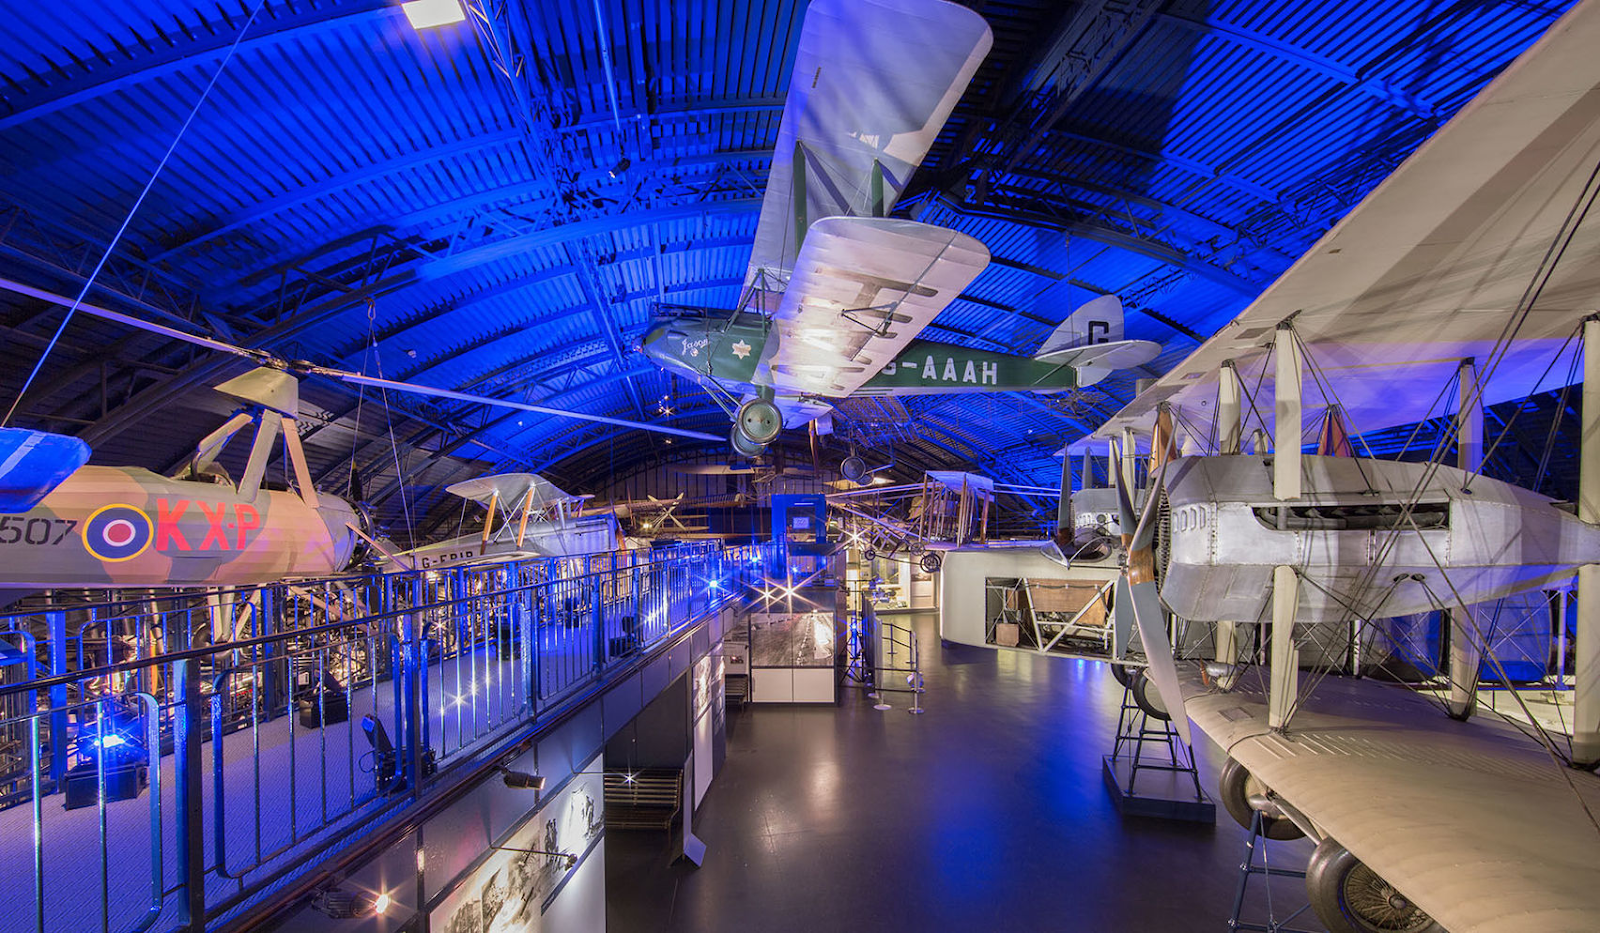 a mezzanine level event space at the science museum with large aviation places hanging from the ceilings